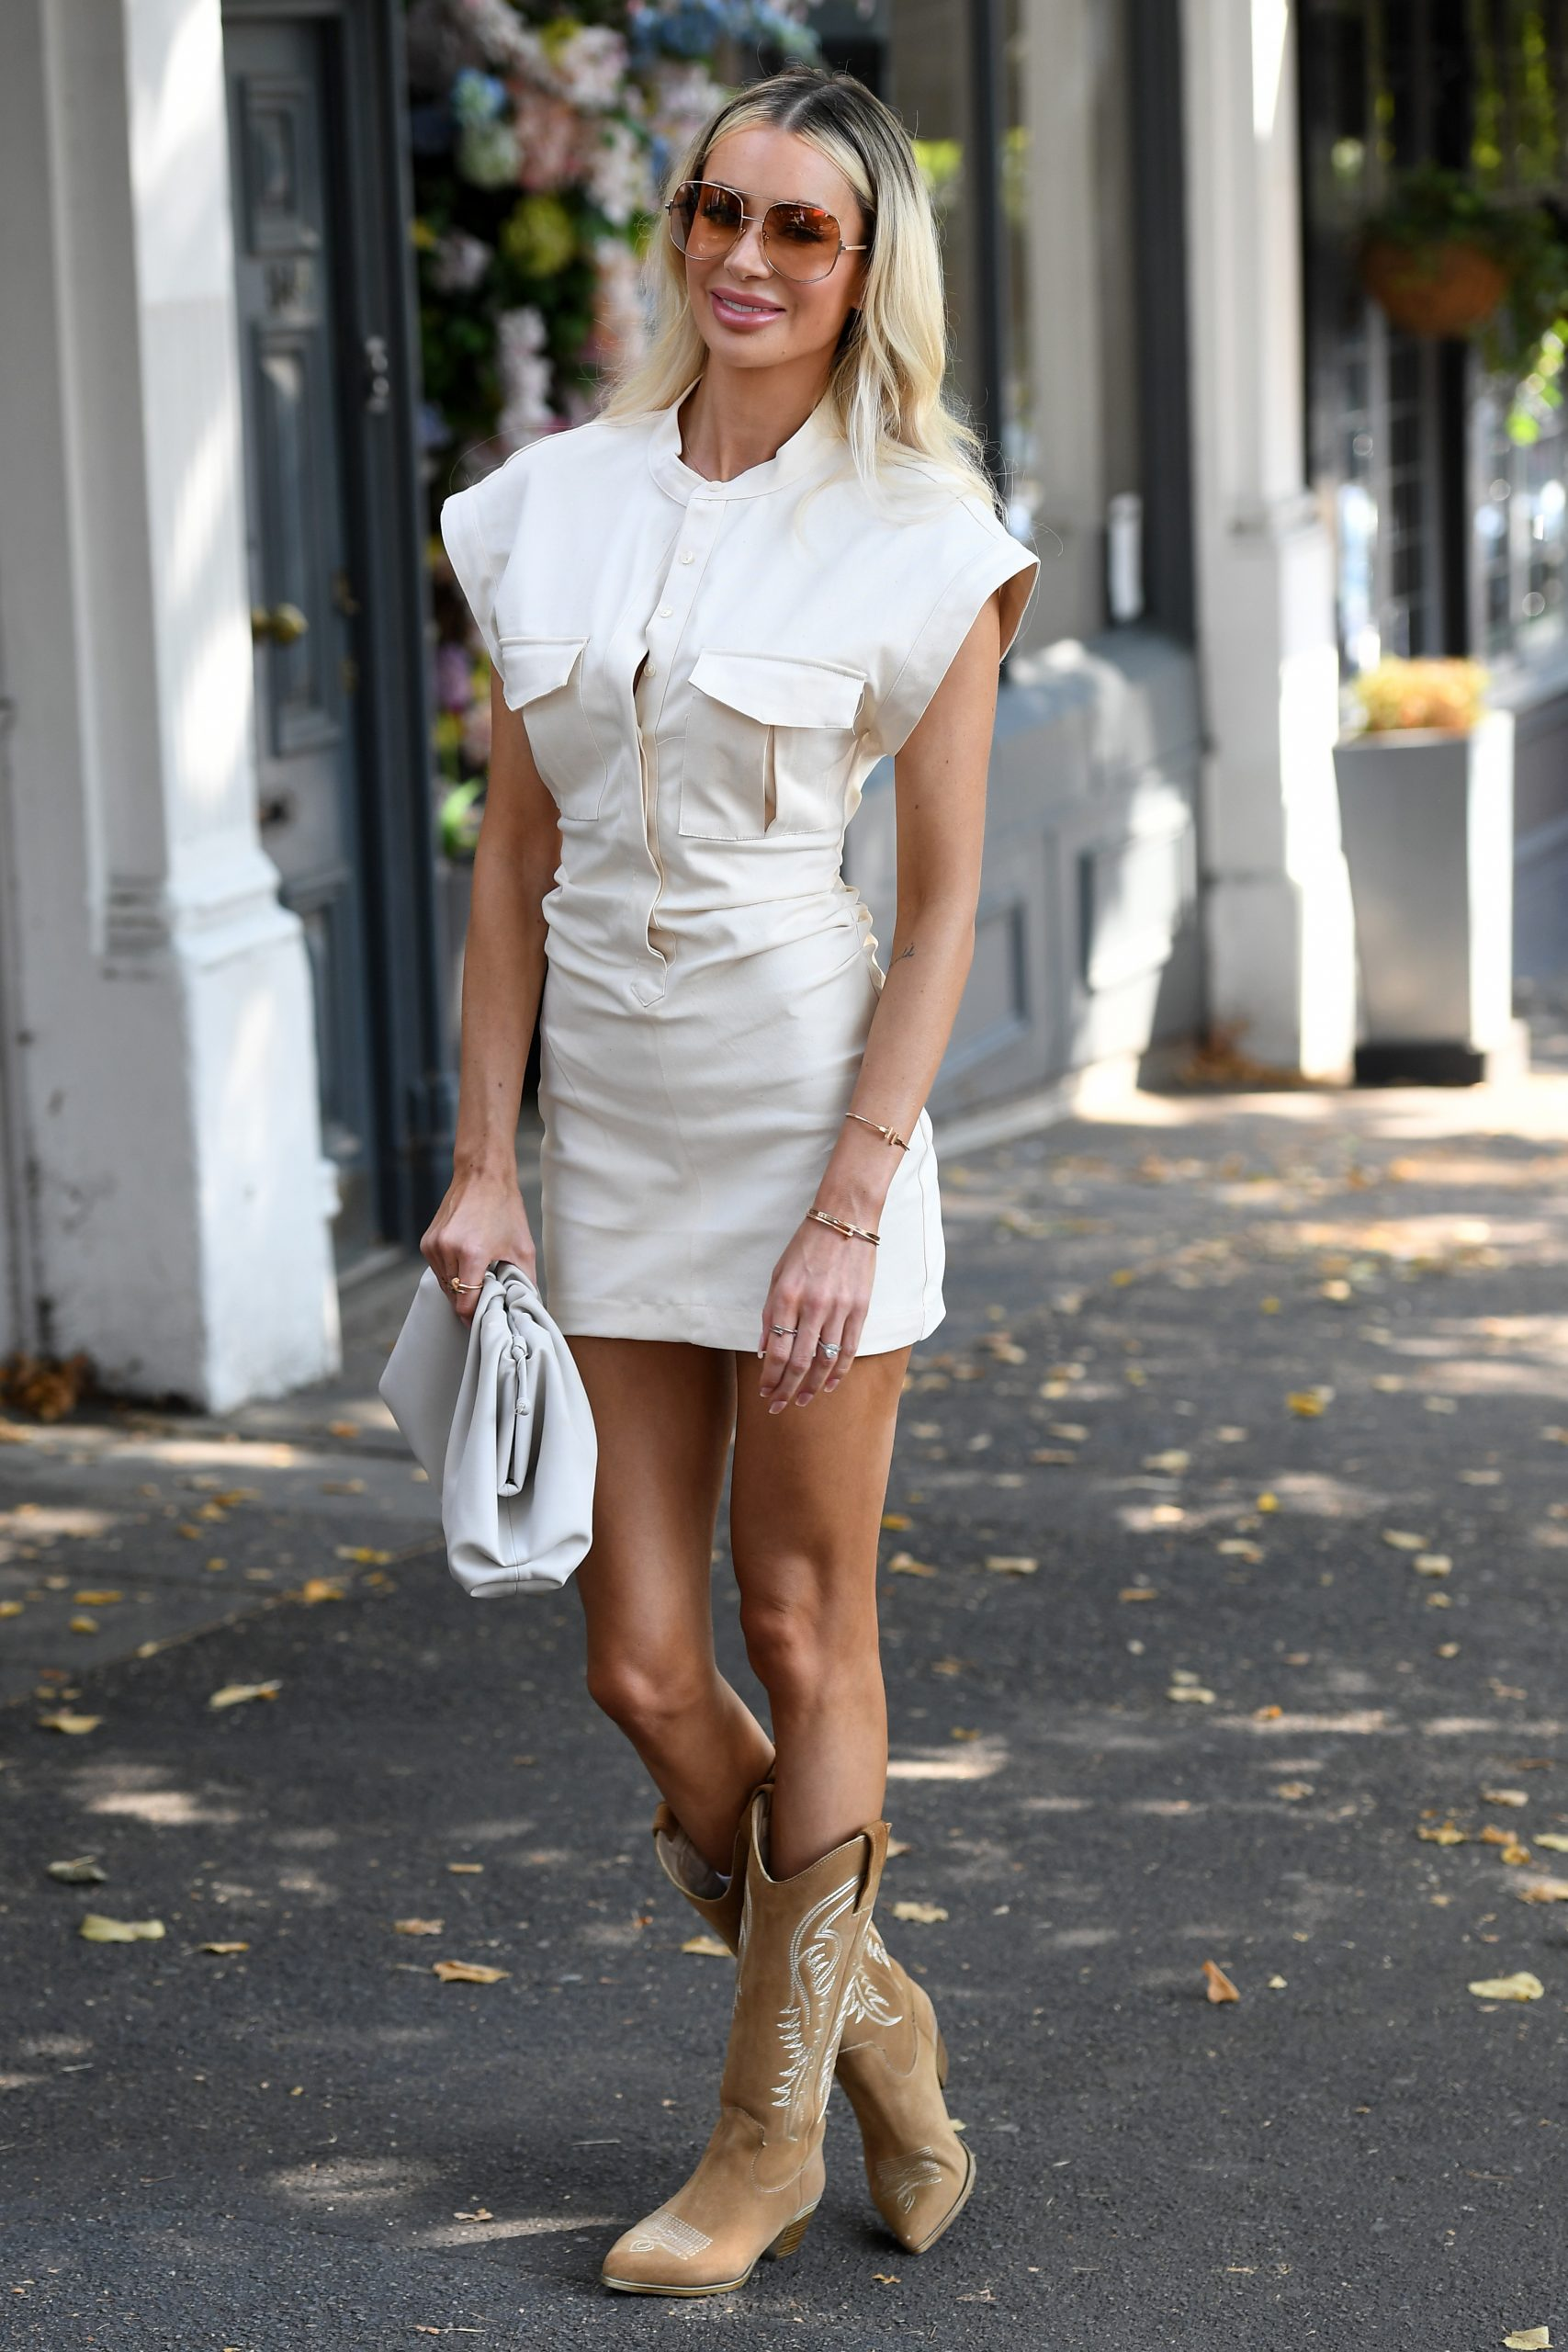 Olivia Attwood 2020 : Olivia Attwood – Leggy in white dress while out in London-09